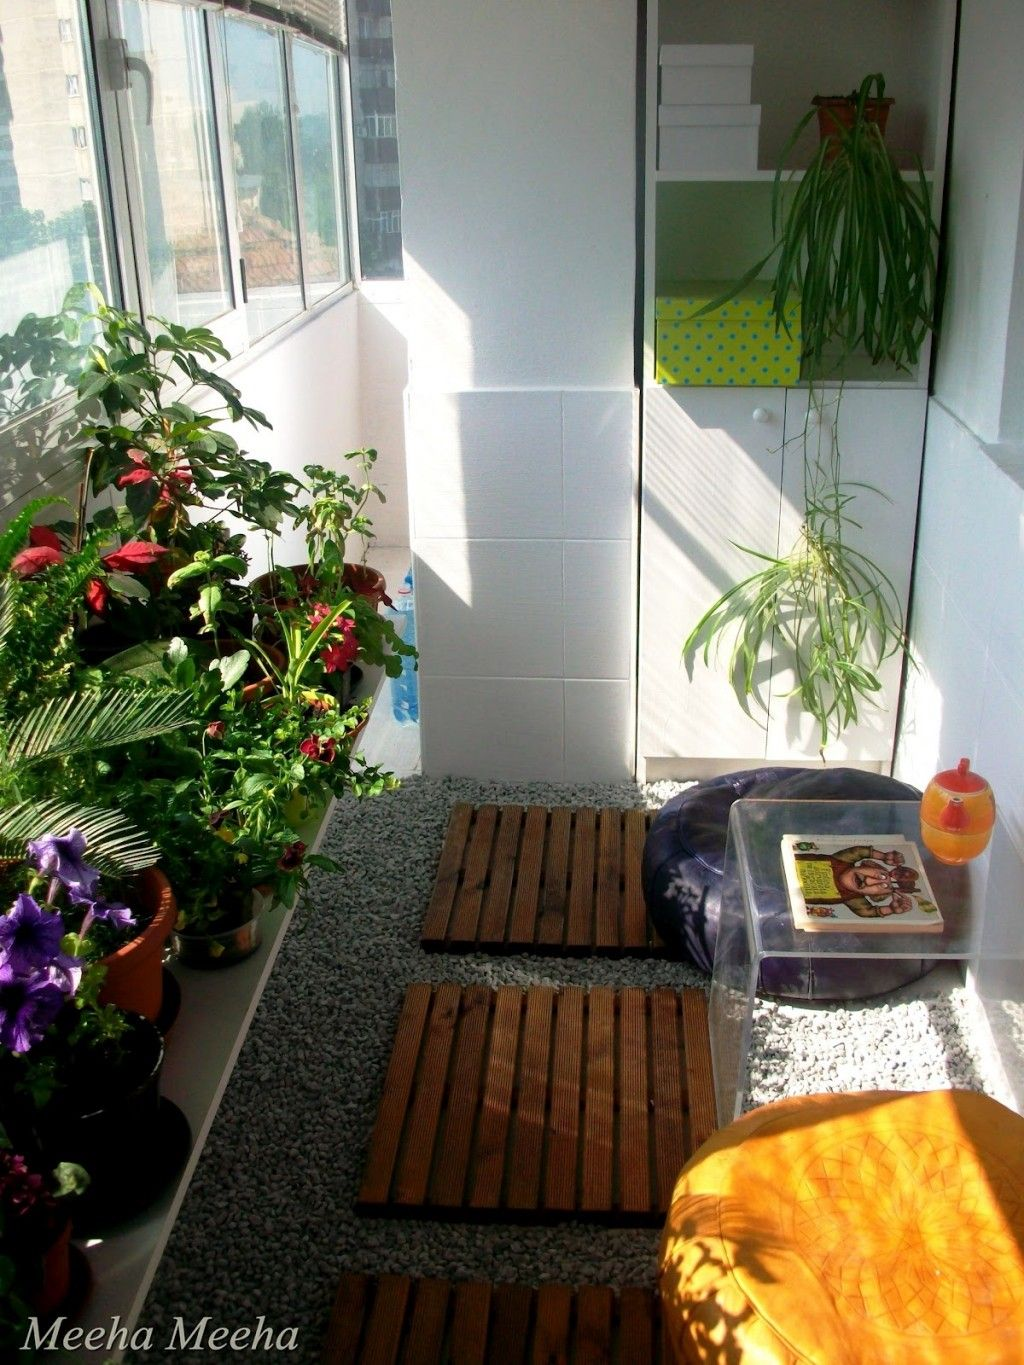 Condo Patio Garden Ideas full image for patio rain shelter outdoor with seat condo garden ideas Japanese Garden Condo Balcony Google Search